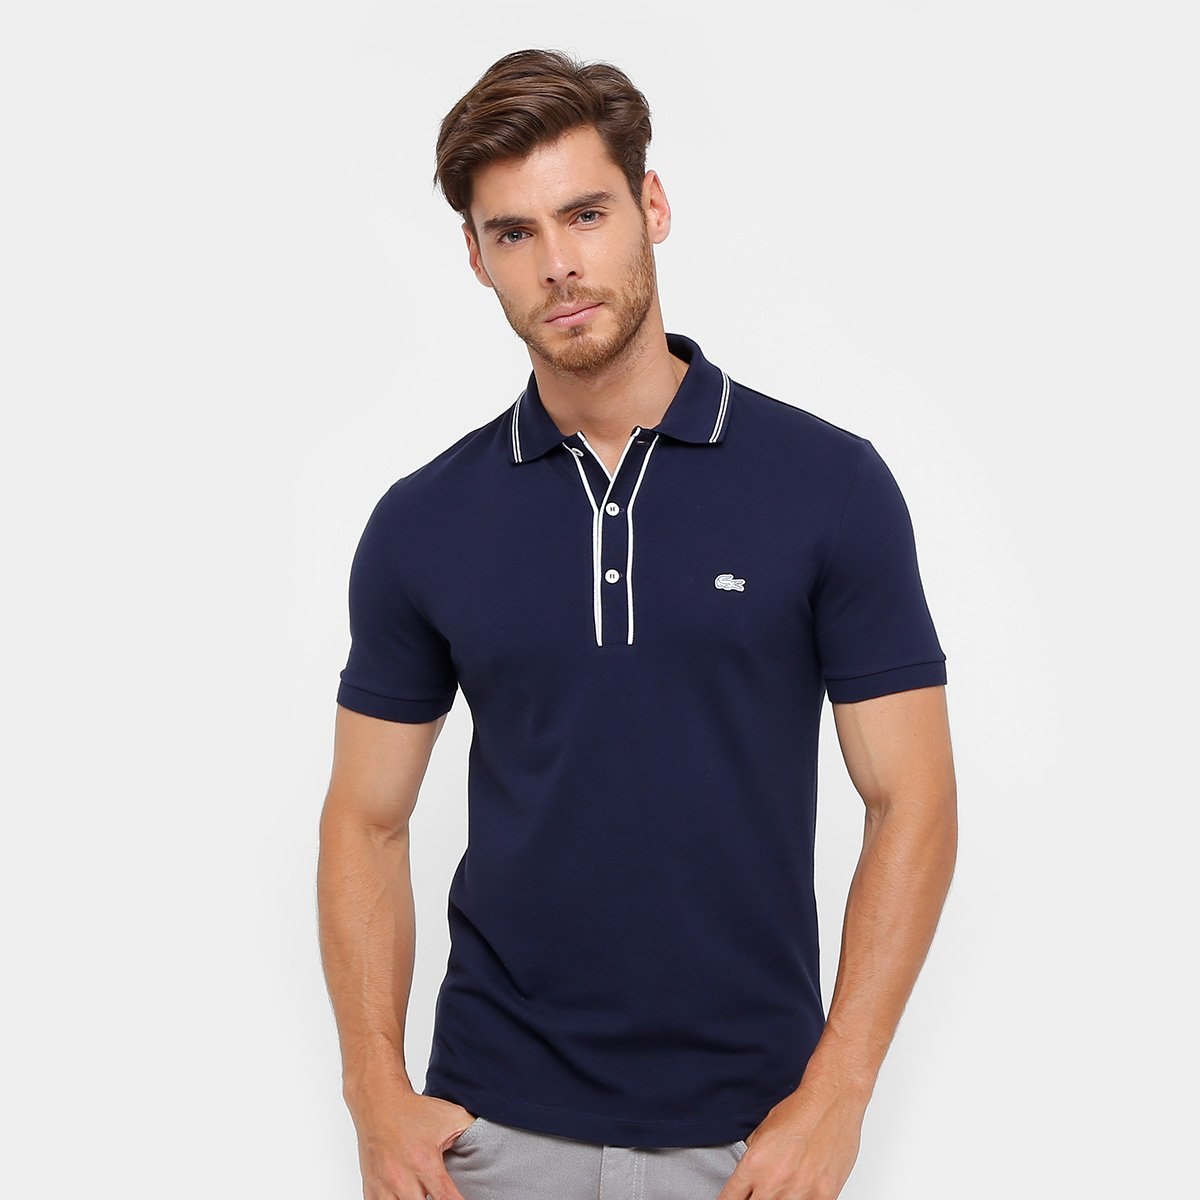 Camisa Polo Lacoste Slim Fit Masculina - Compre Agora   Netshoes a5362d5500